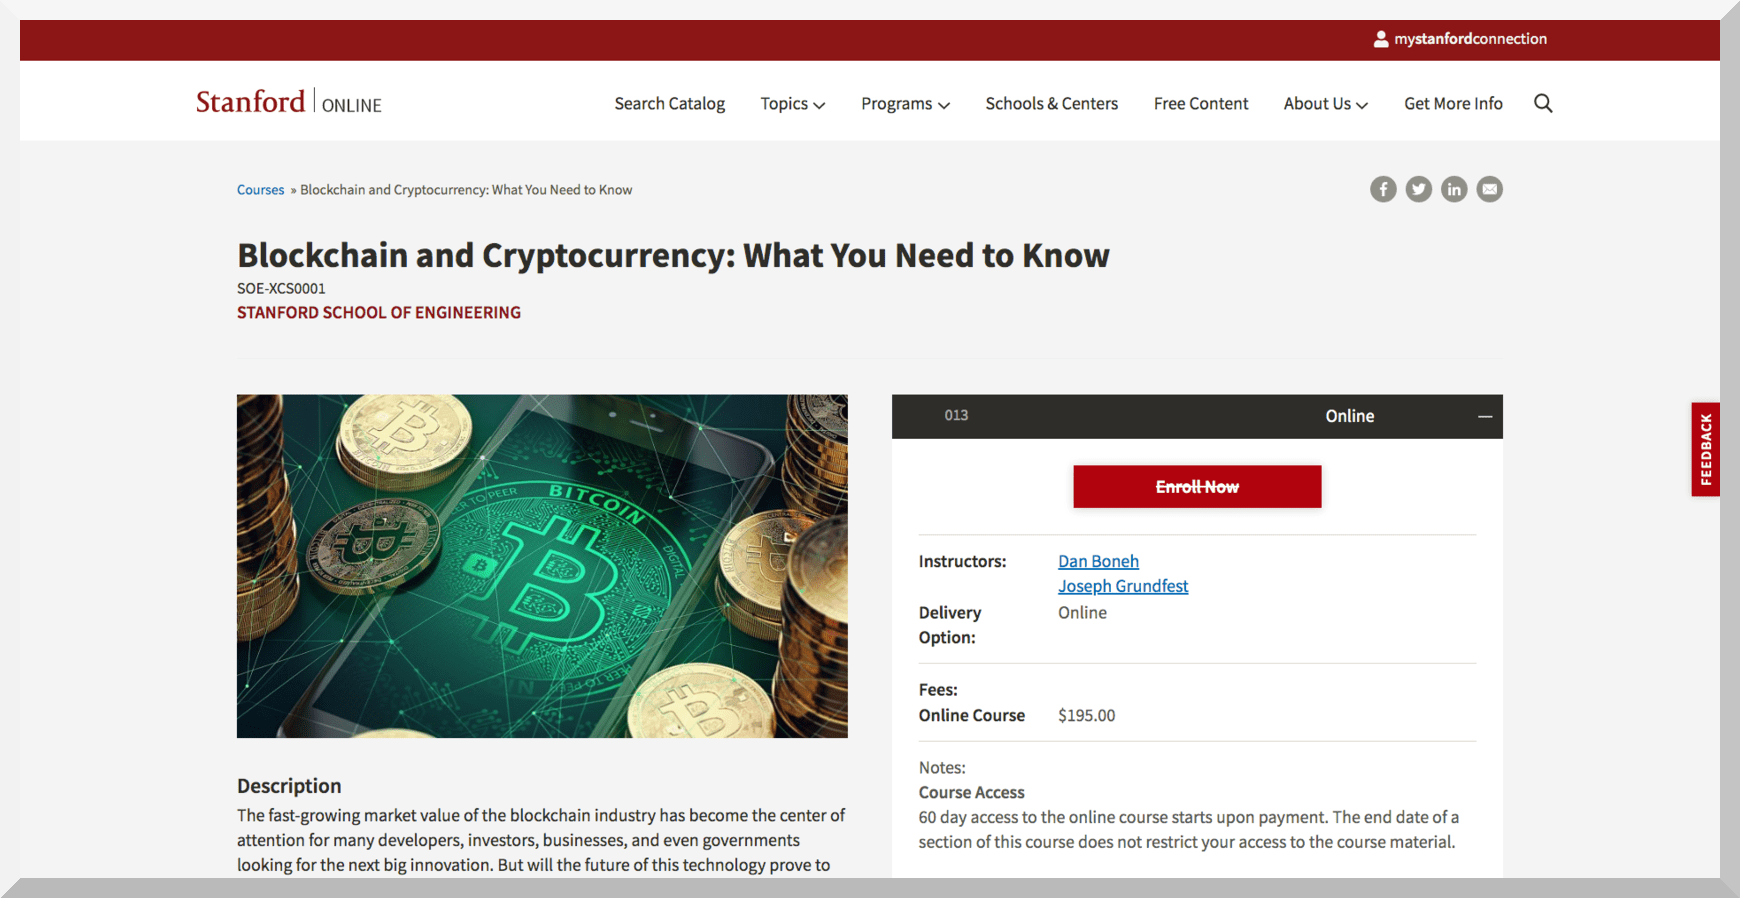 Blockchain and Cryptocurrency – Stanford University